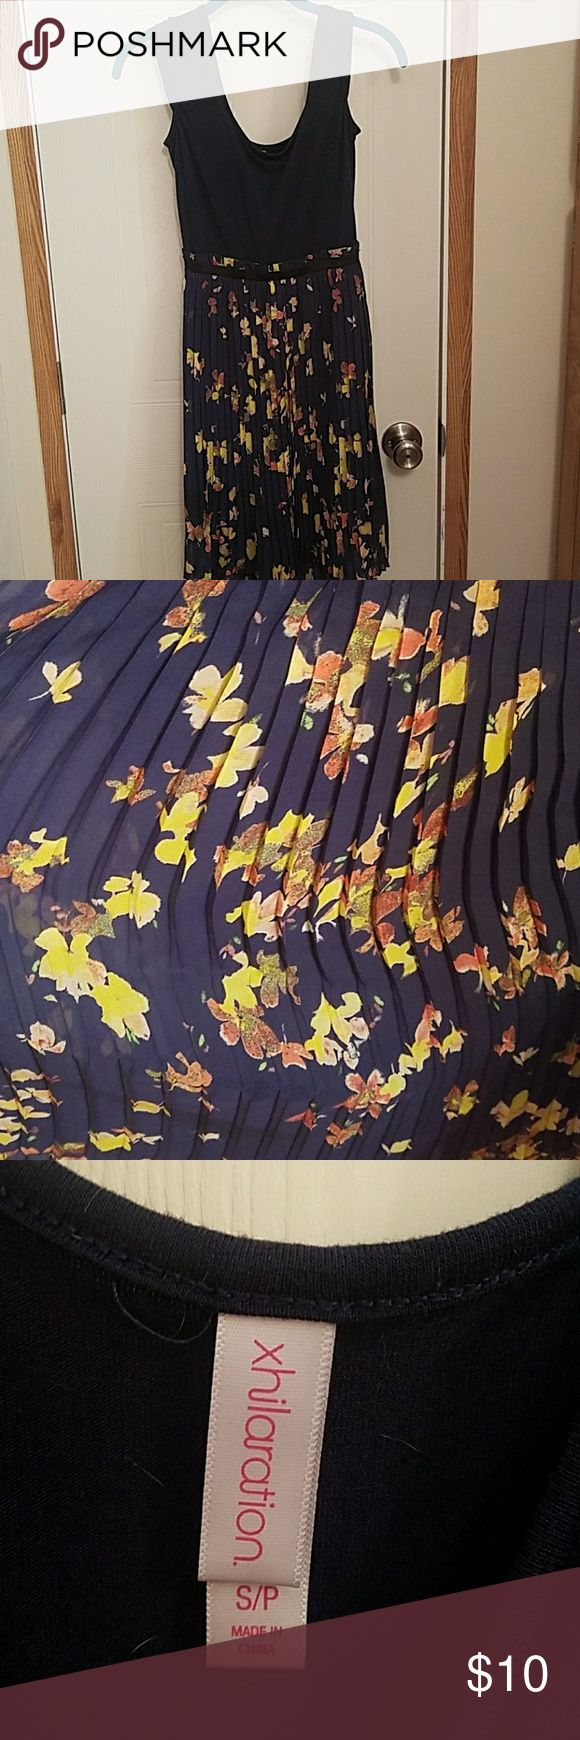 Flower Sunday dress Navy blue on top with flower print pleats on the bottom. Worn once! In great condition!! Xhilaration Dresses Midi